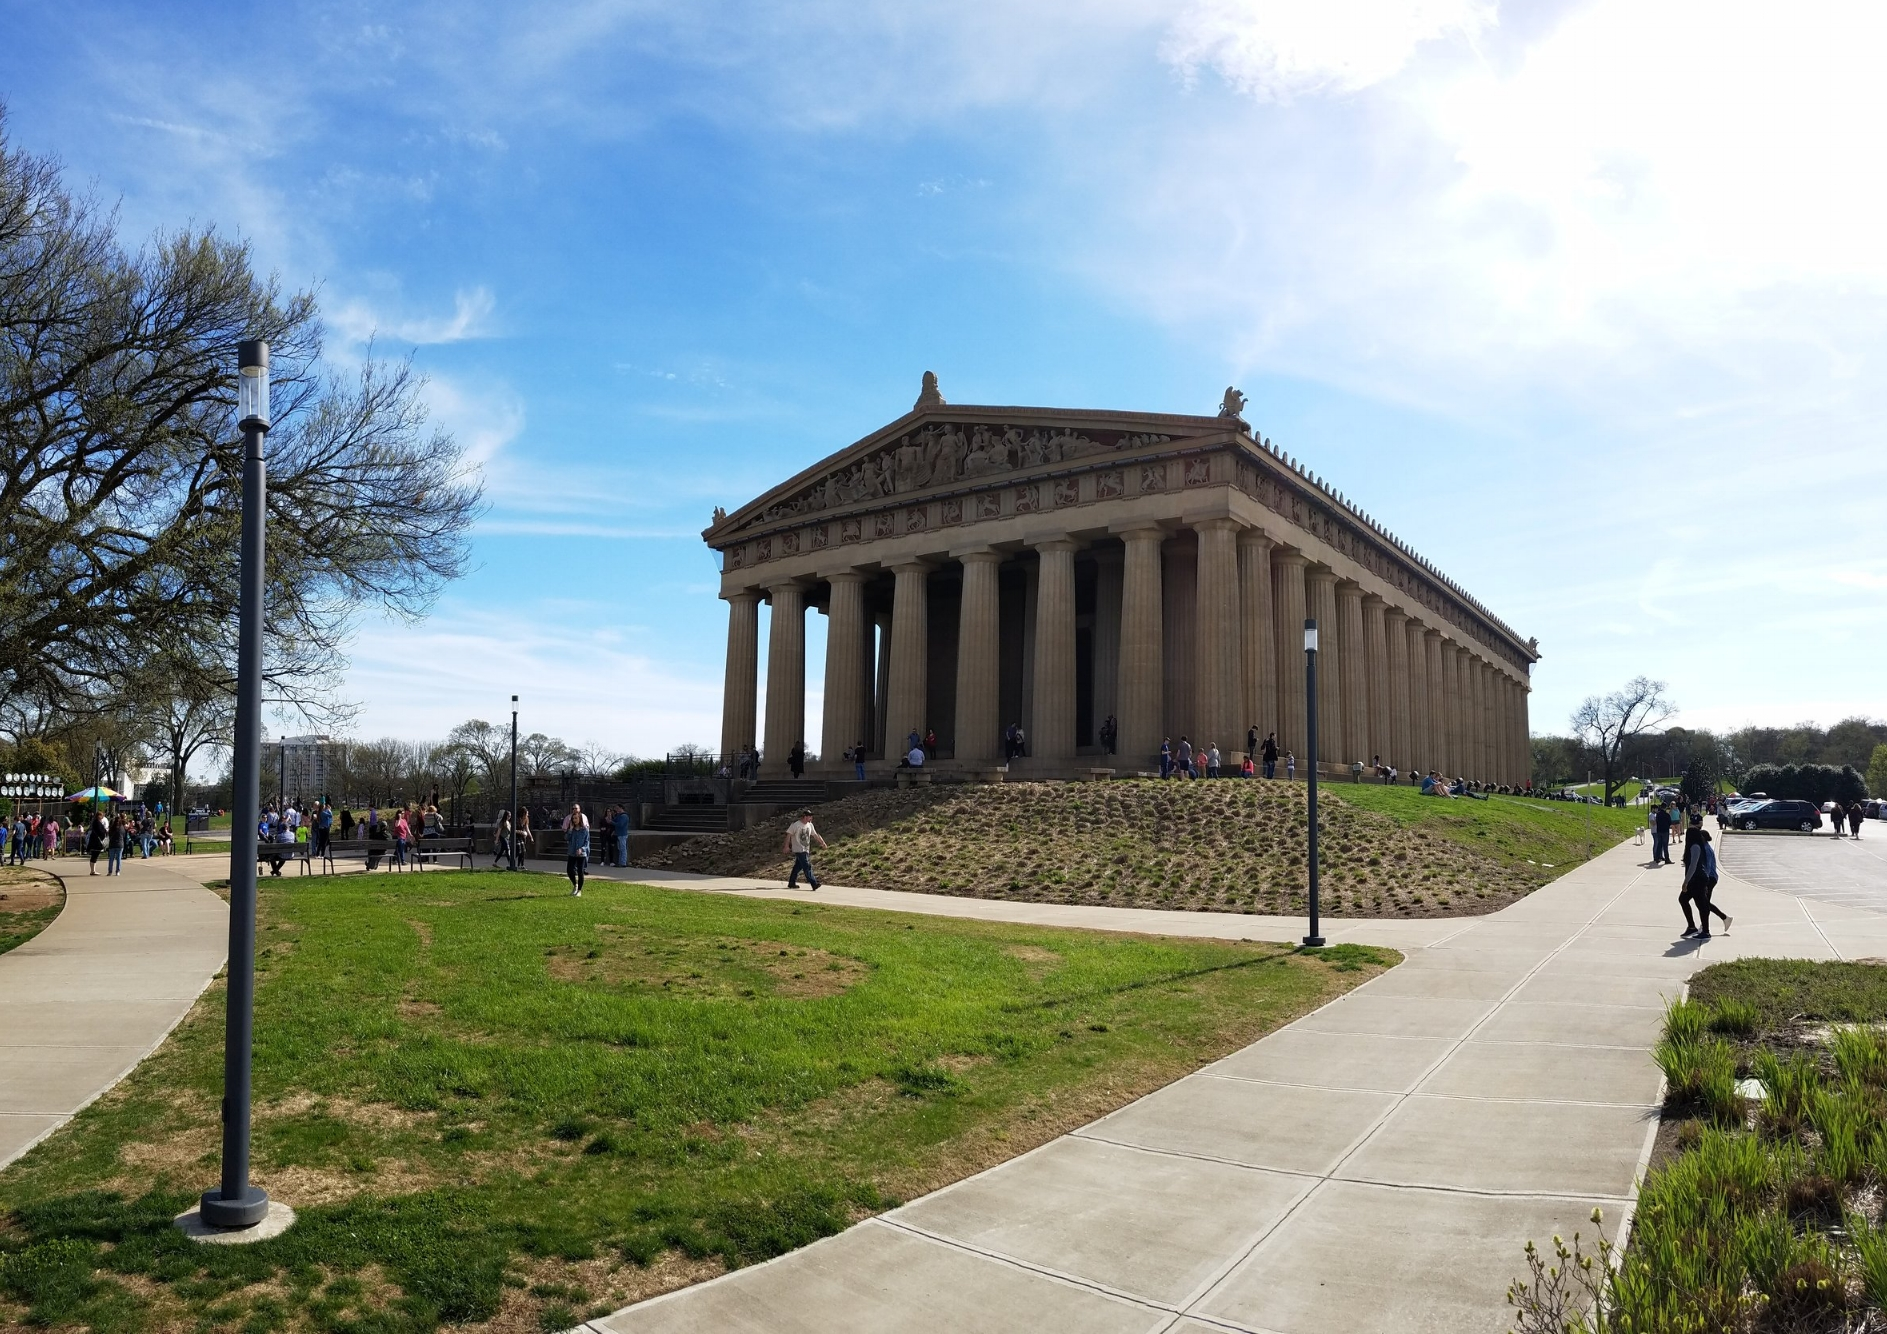 A full-scale replica of The Parthenon stands in Nashville's Centennial Park